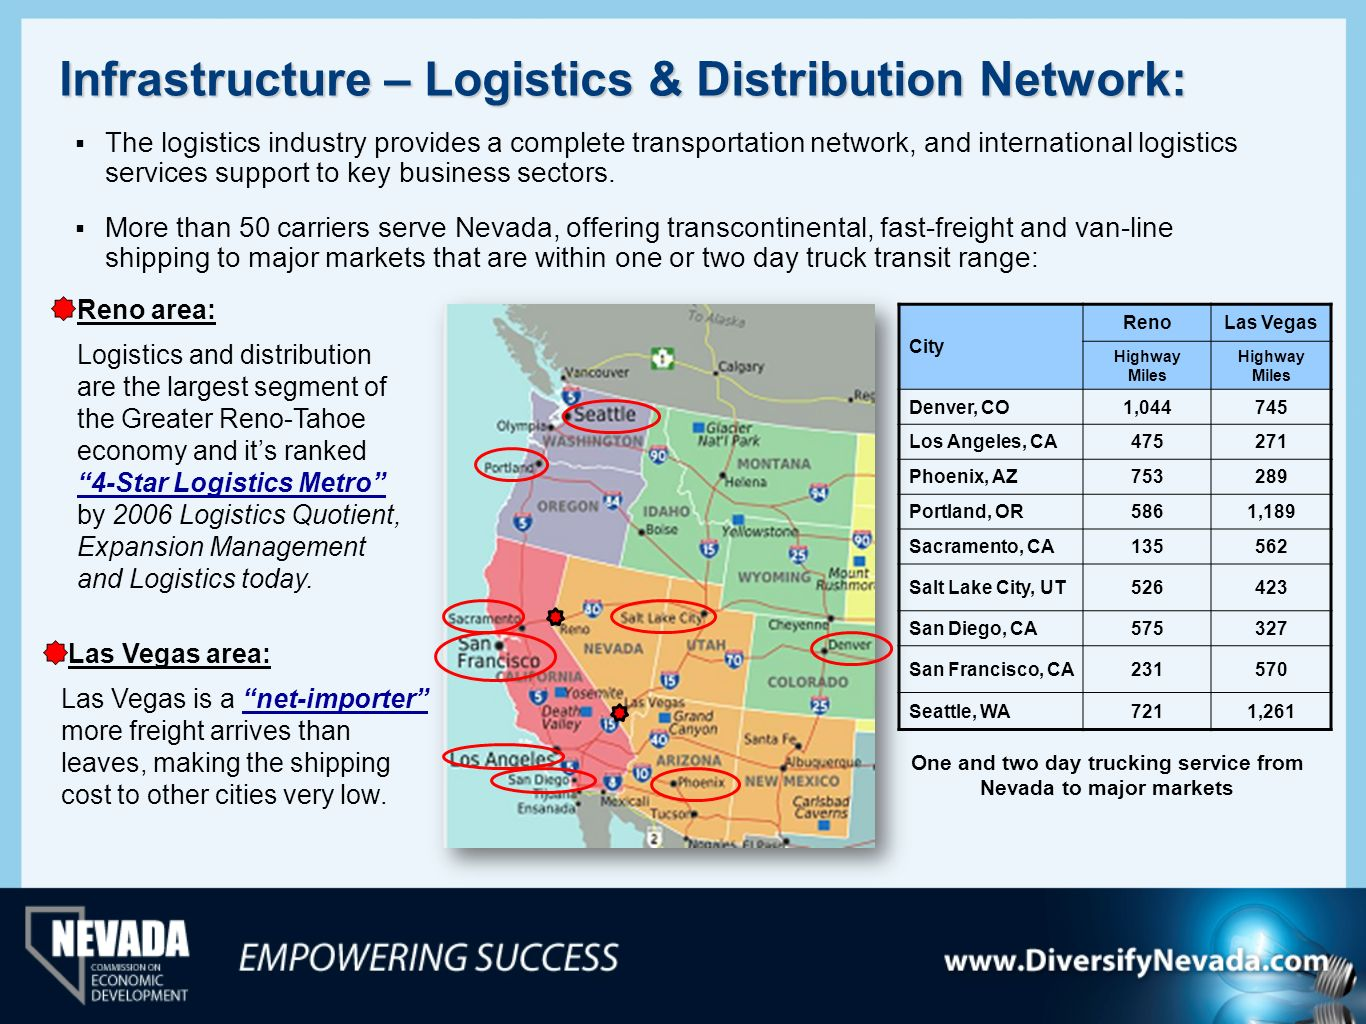 Infrastructure – Logistics & Distribution Network: The logistics industry provides a complete transportation network, and international logistics serv